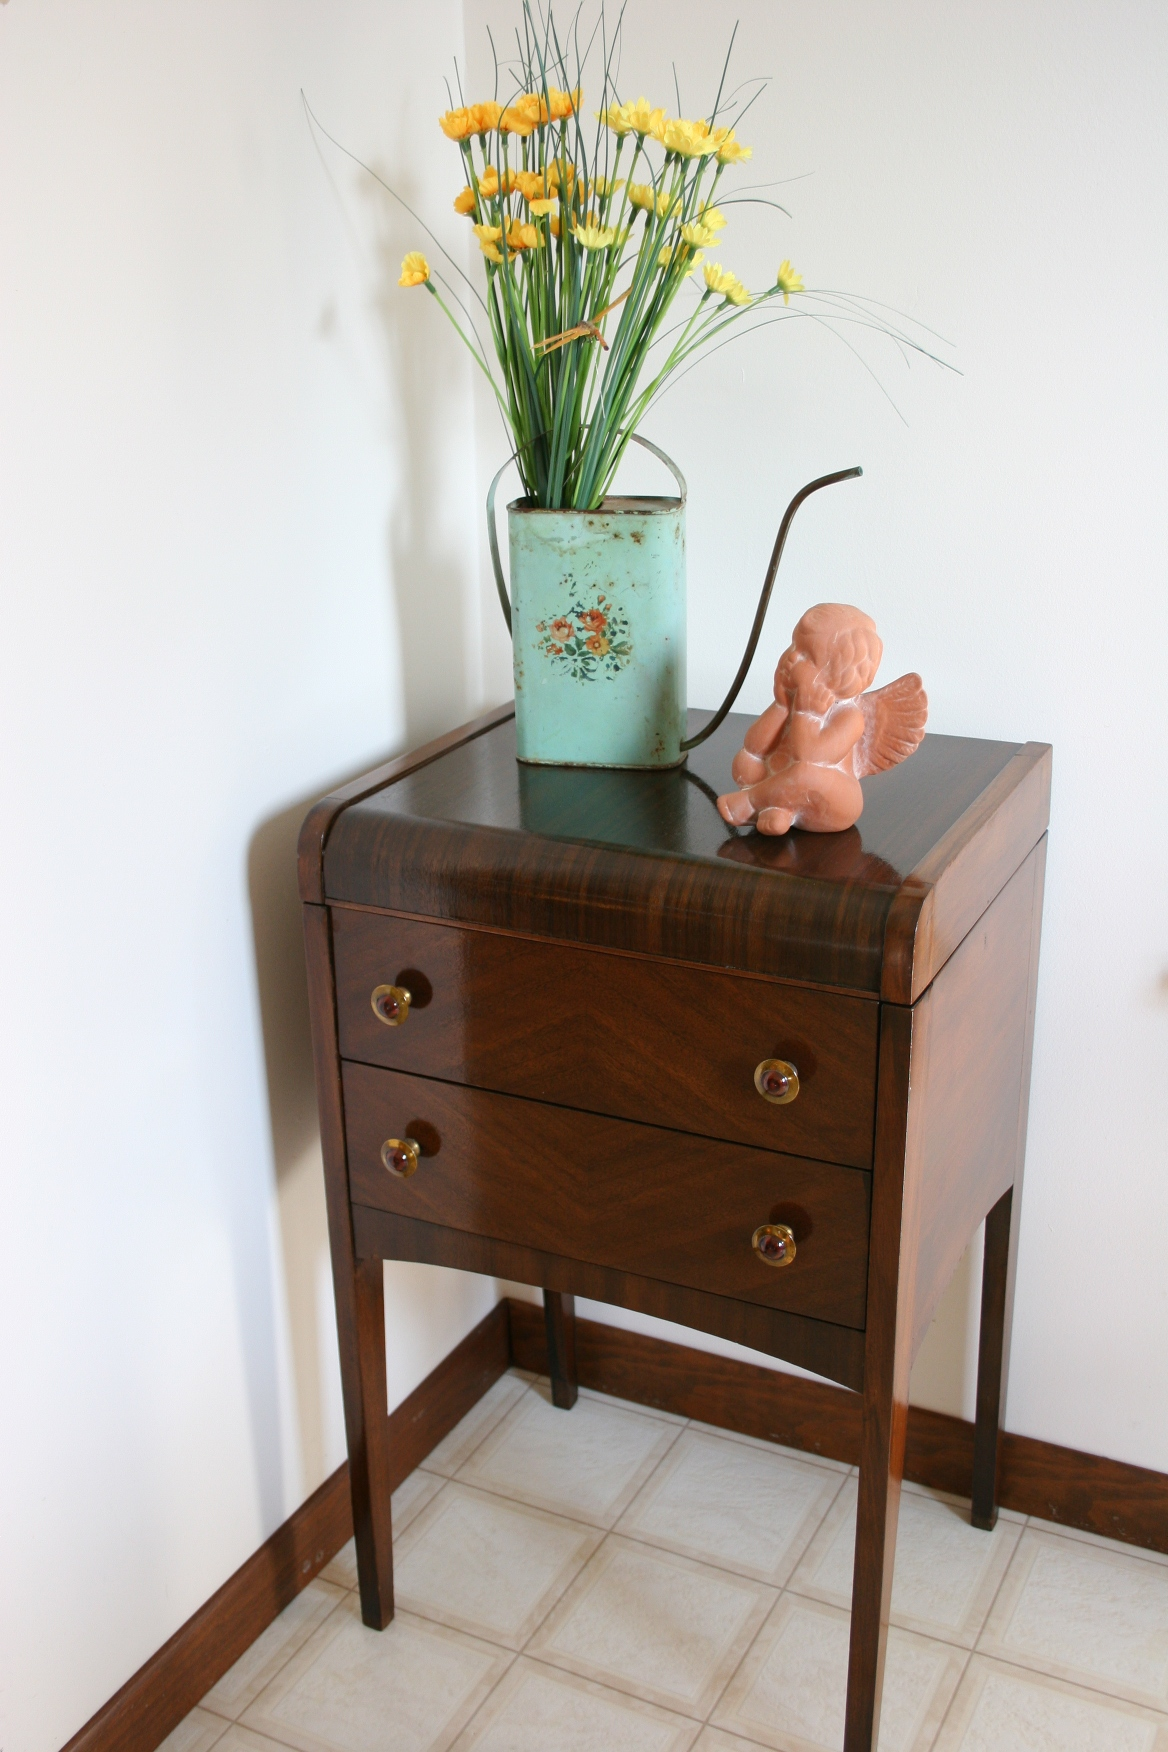 My   ... & More than a sewing cabinet | Minnesota Prairie Roots